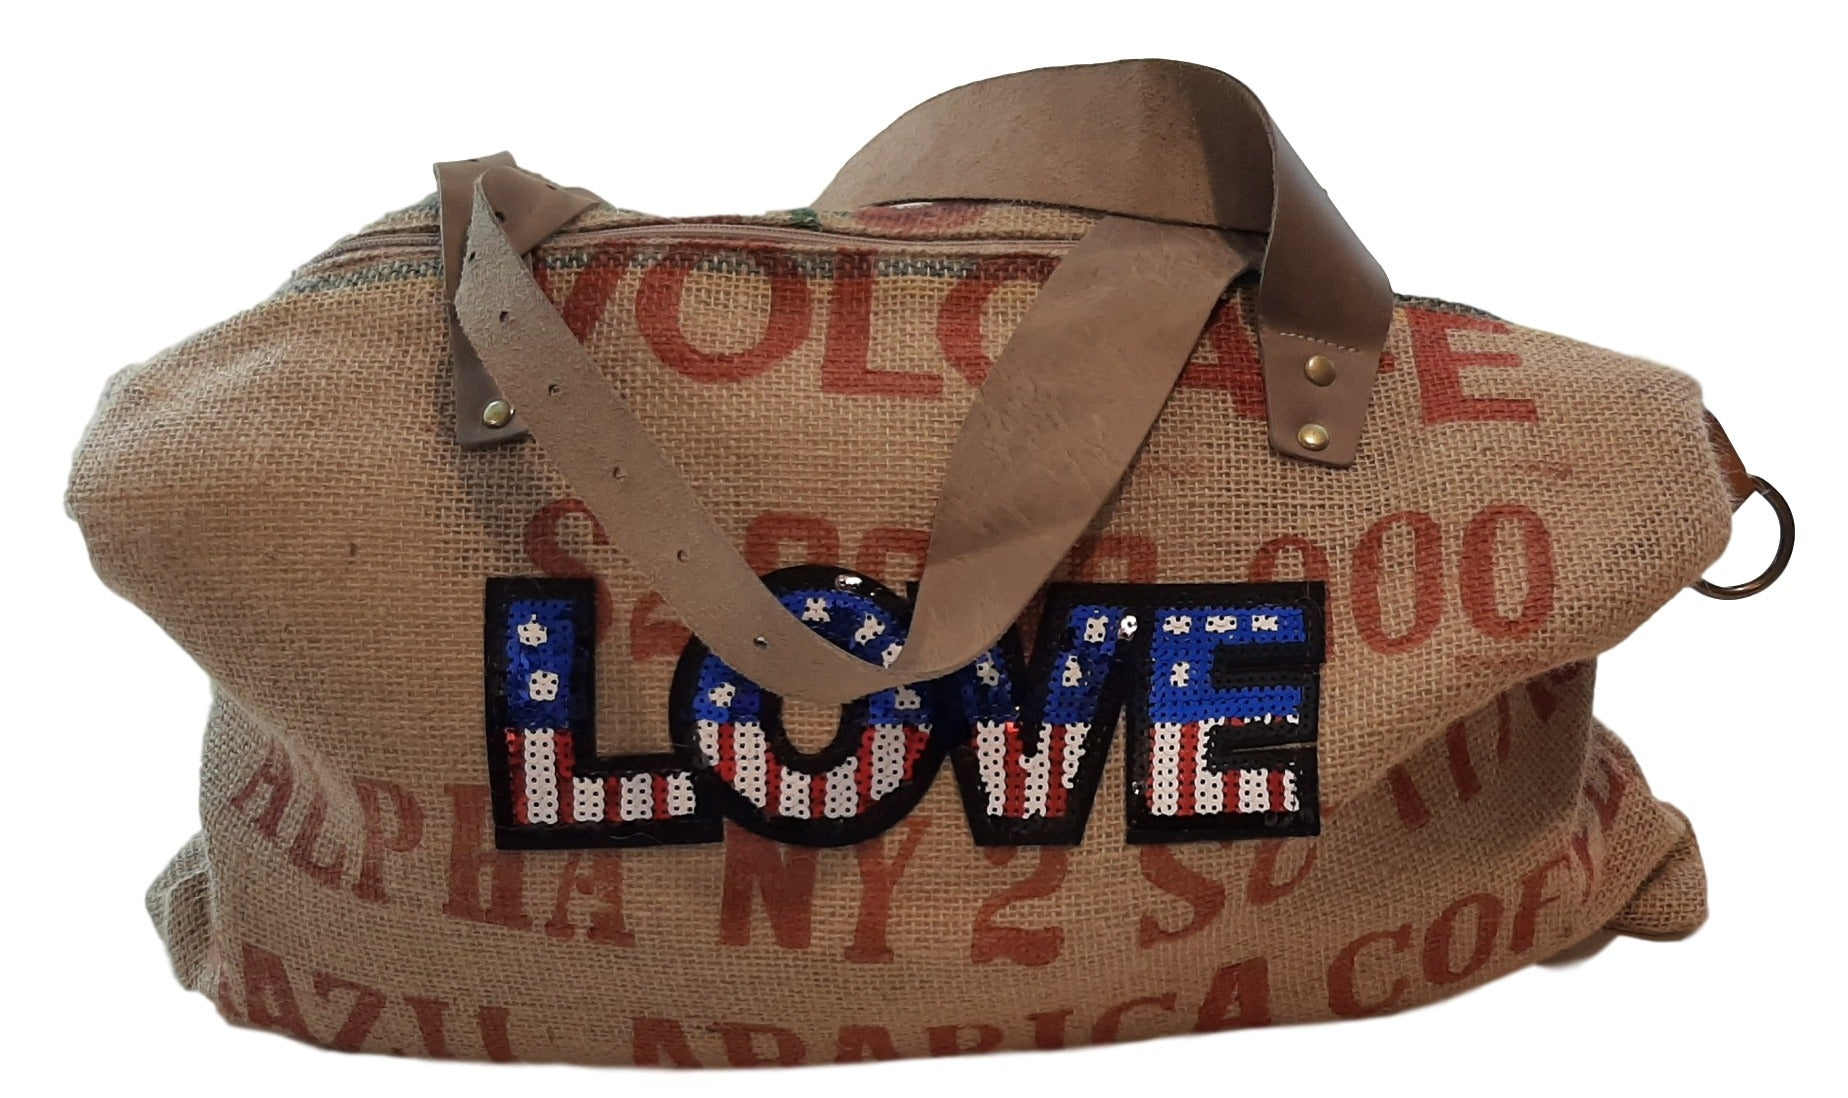 LEATHER BAG  JUTE BAG WITH LEATHER HANDLES AND PAILLETTES DECORATION